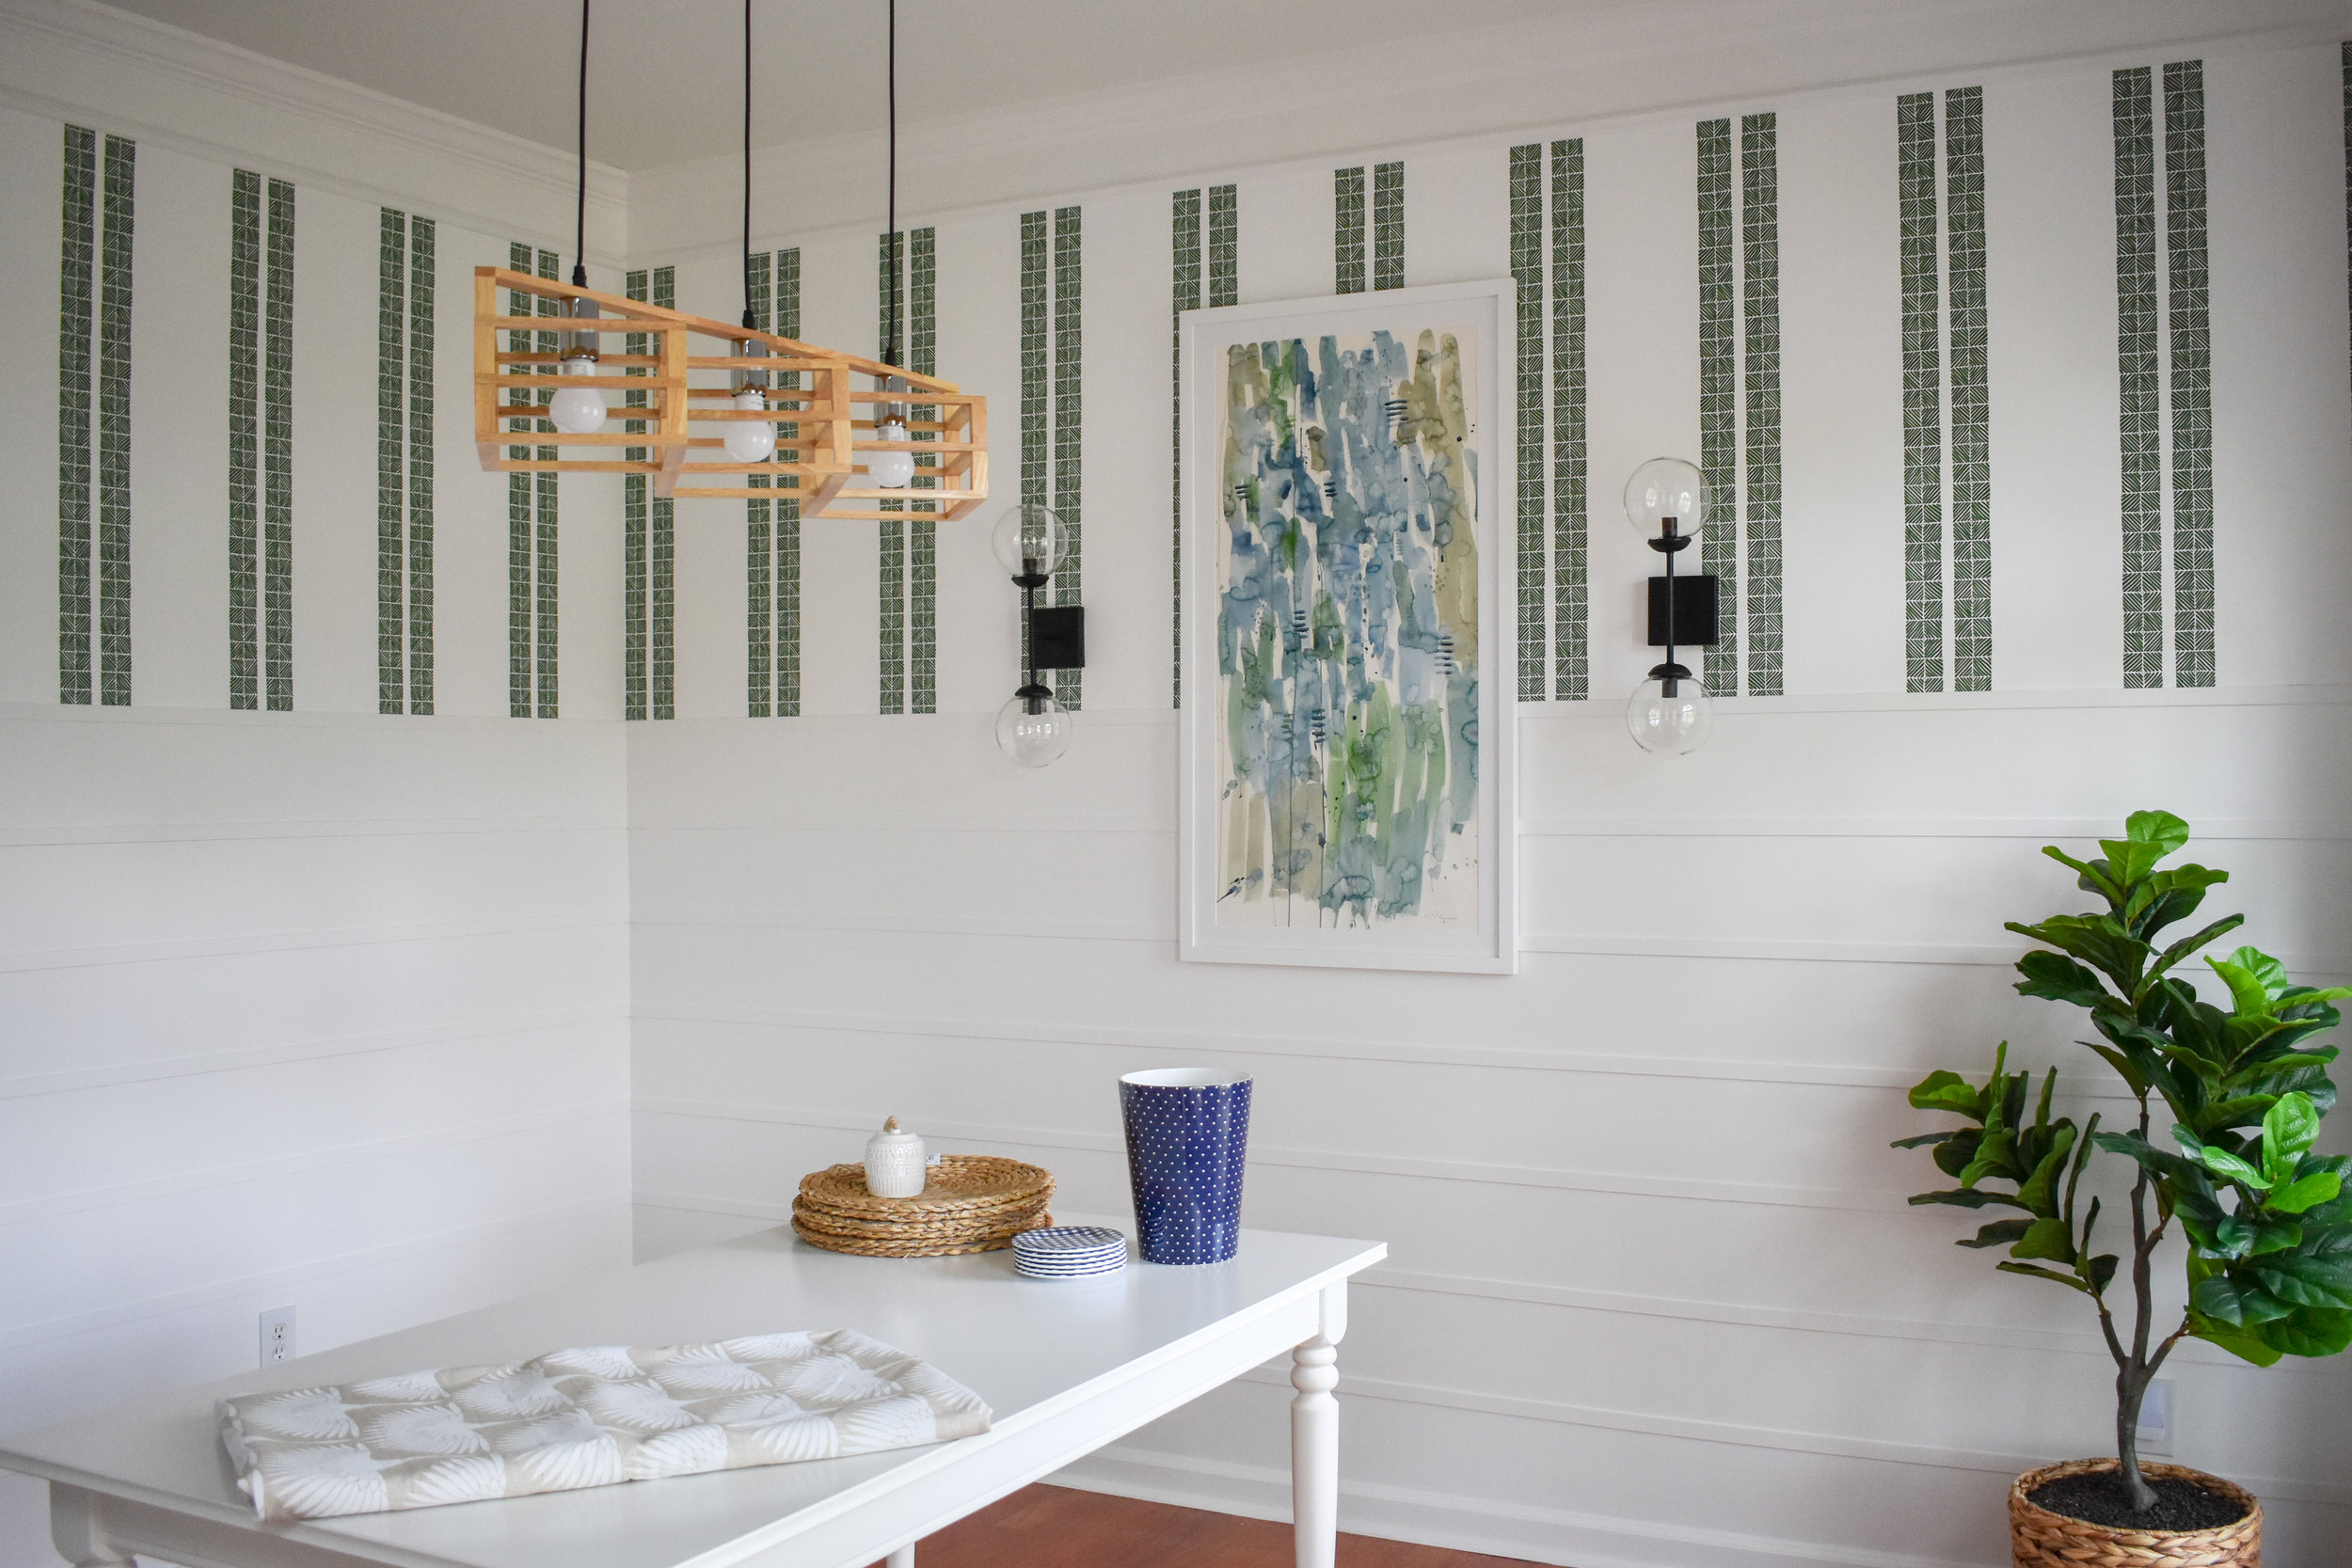 How To Install Horizontal Board And Batten: My Modern Shiplap DIY Knockoff On The Cheap | Here's how I installed this modern wainscoting in my dining room for under $200! #moderntrimideas #shiplapaccentwall #modernwainscotingtrends